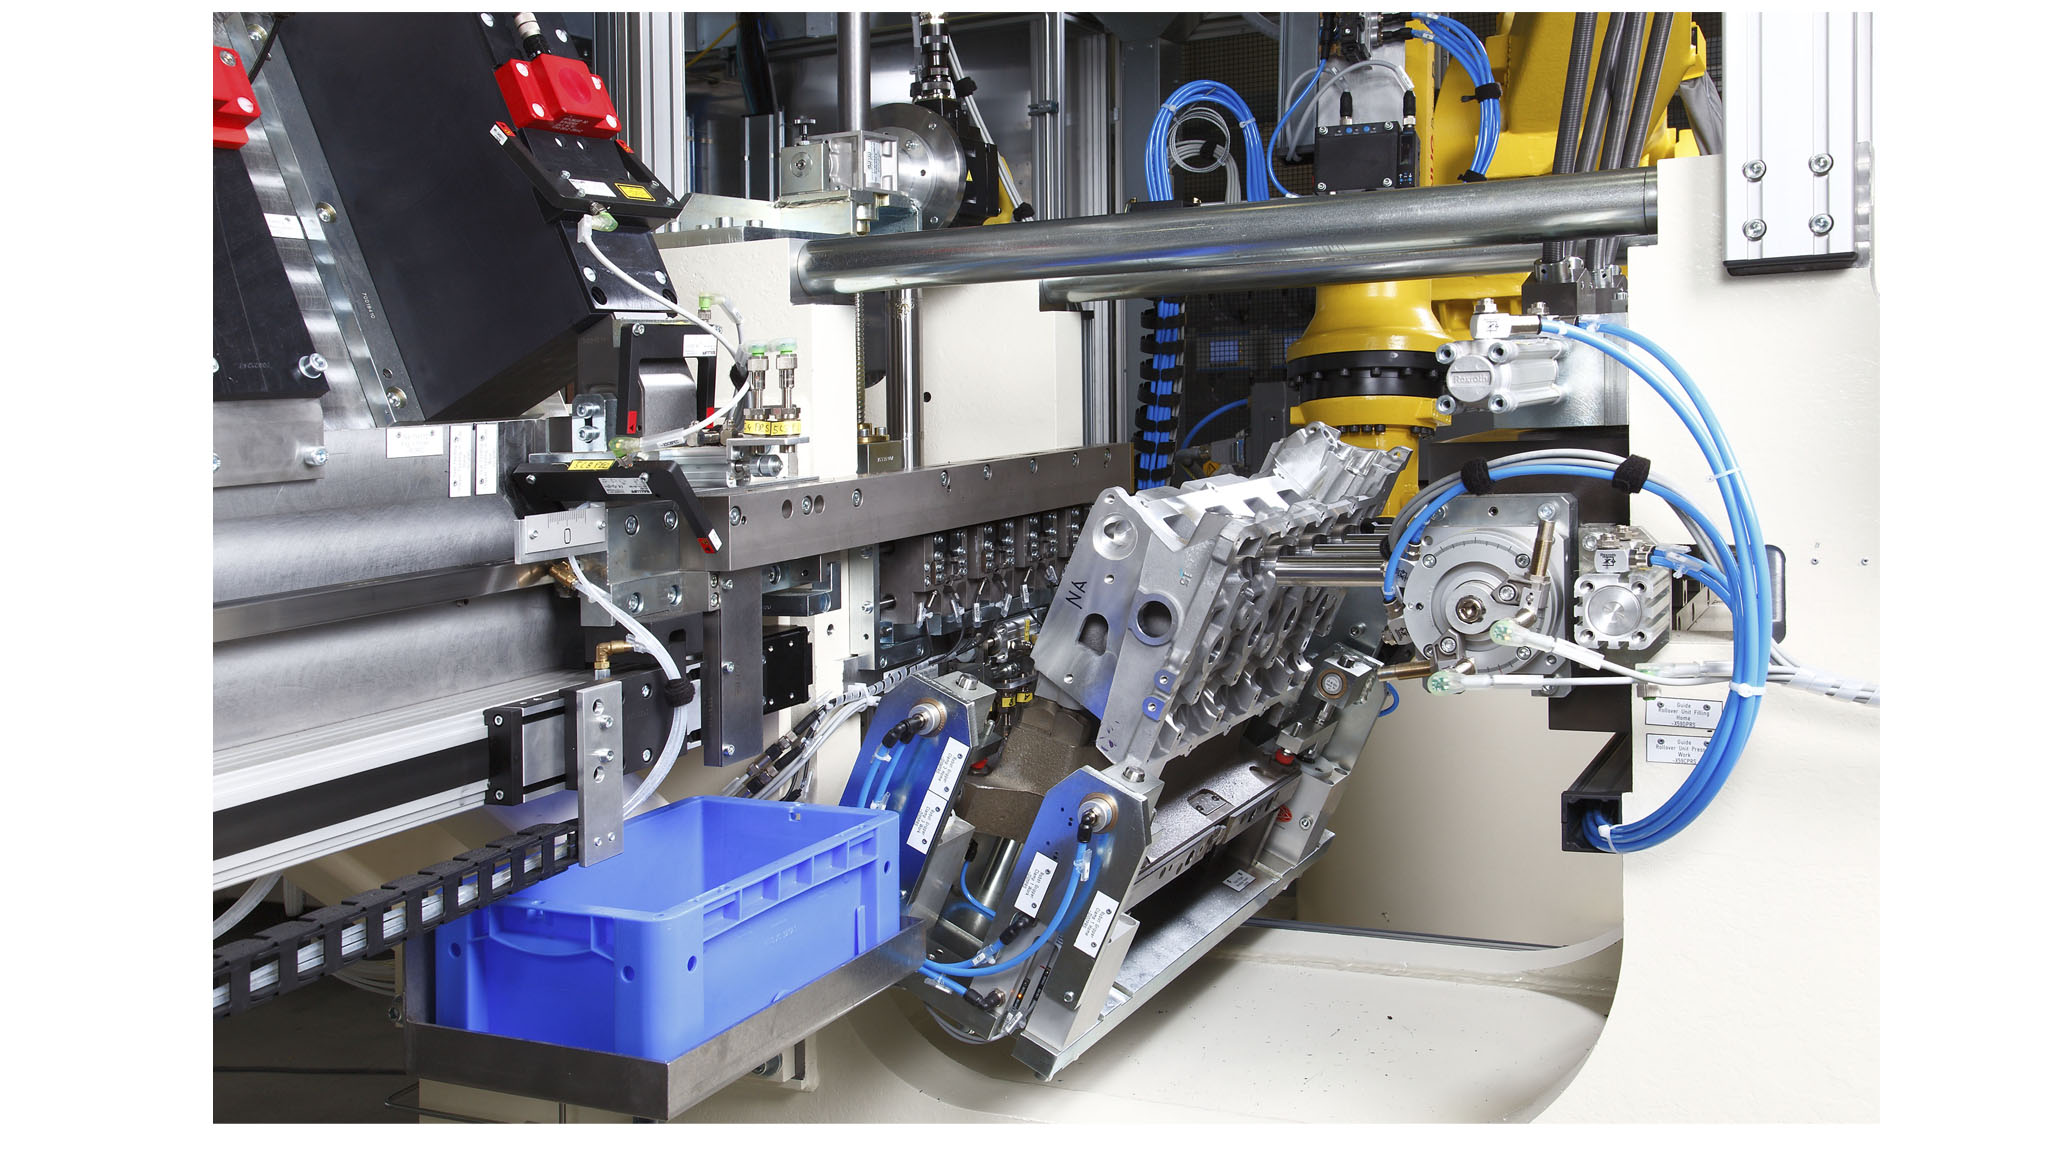 Cylinder head assembly systems for valve seat rings and valve guides